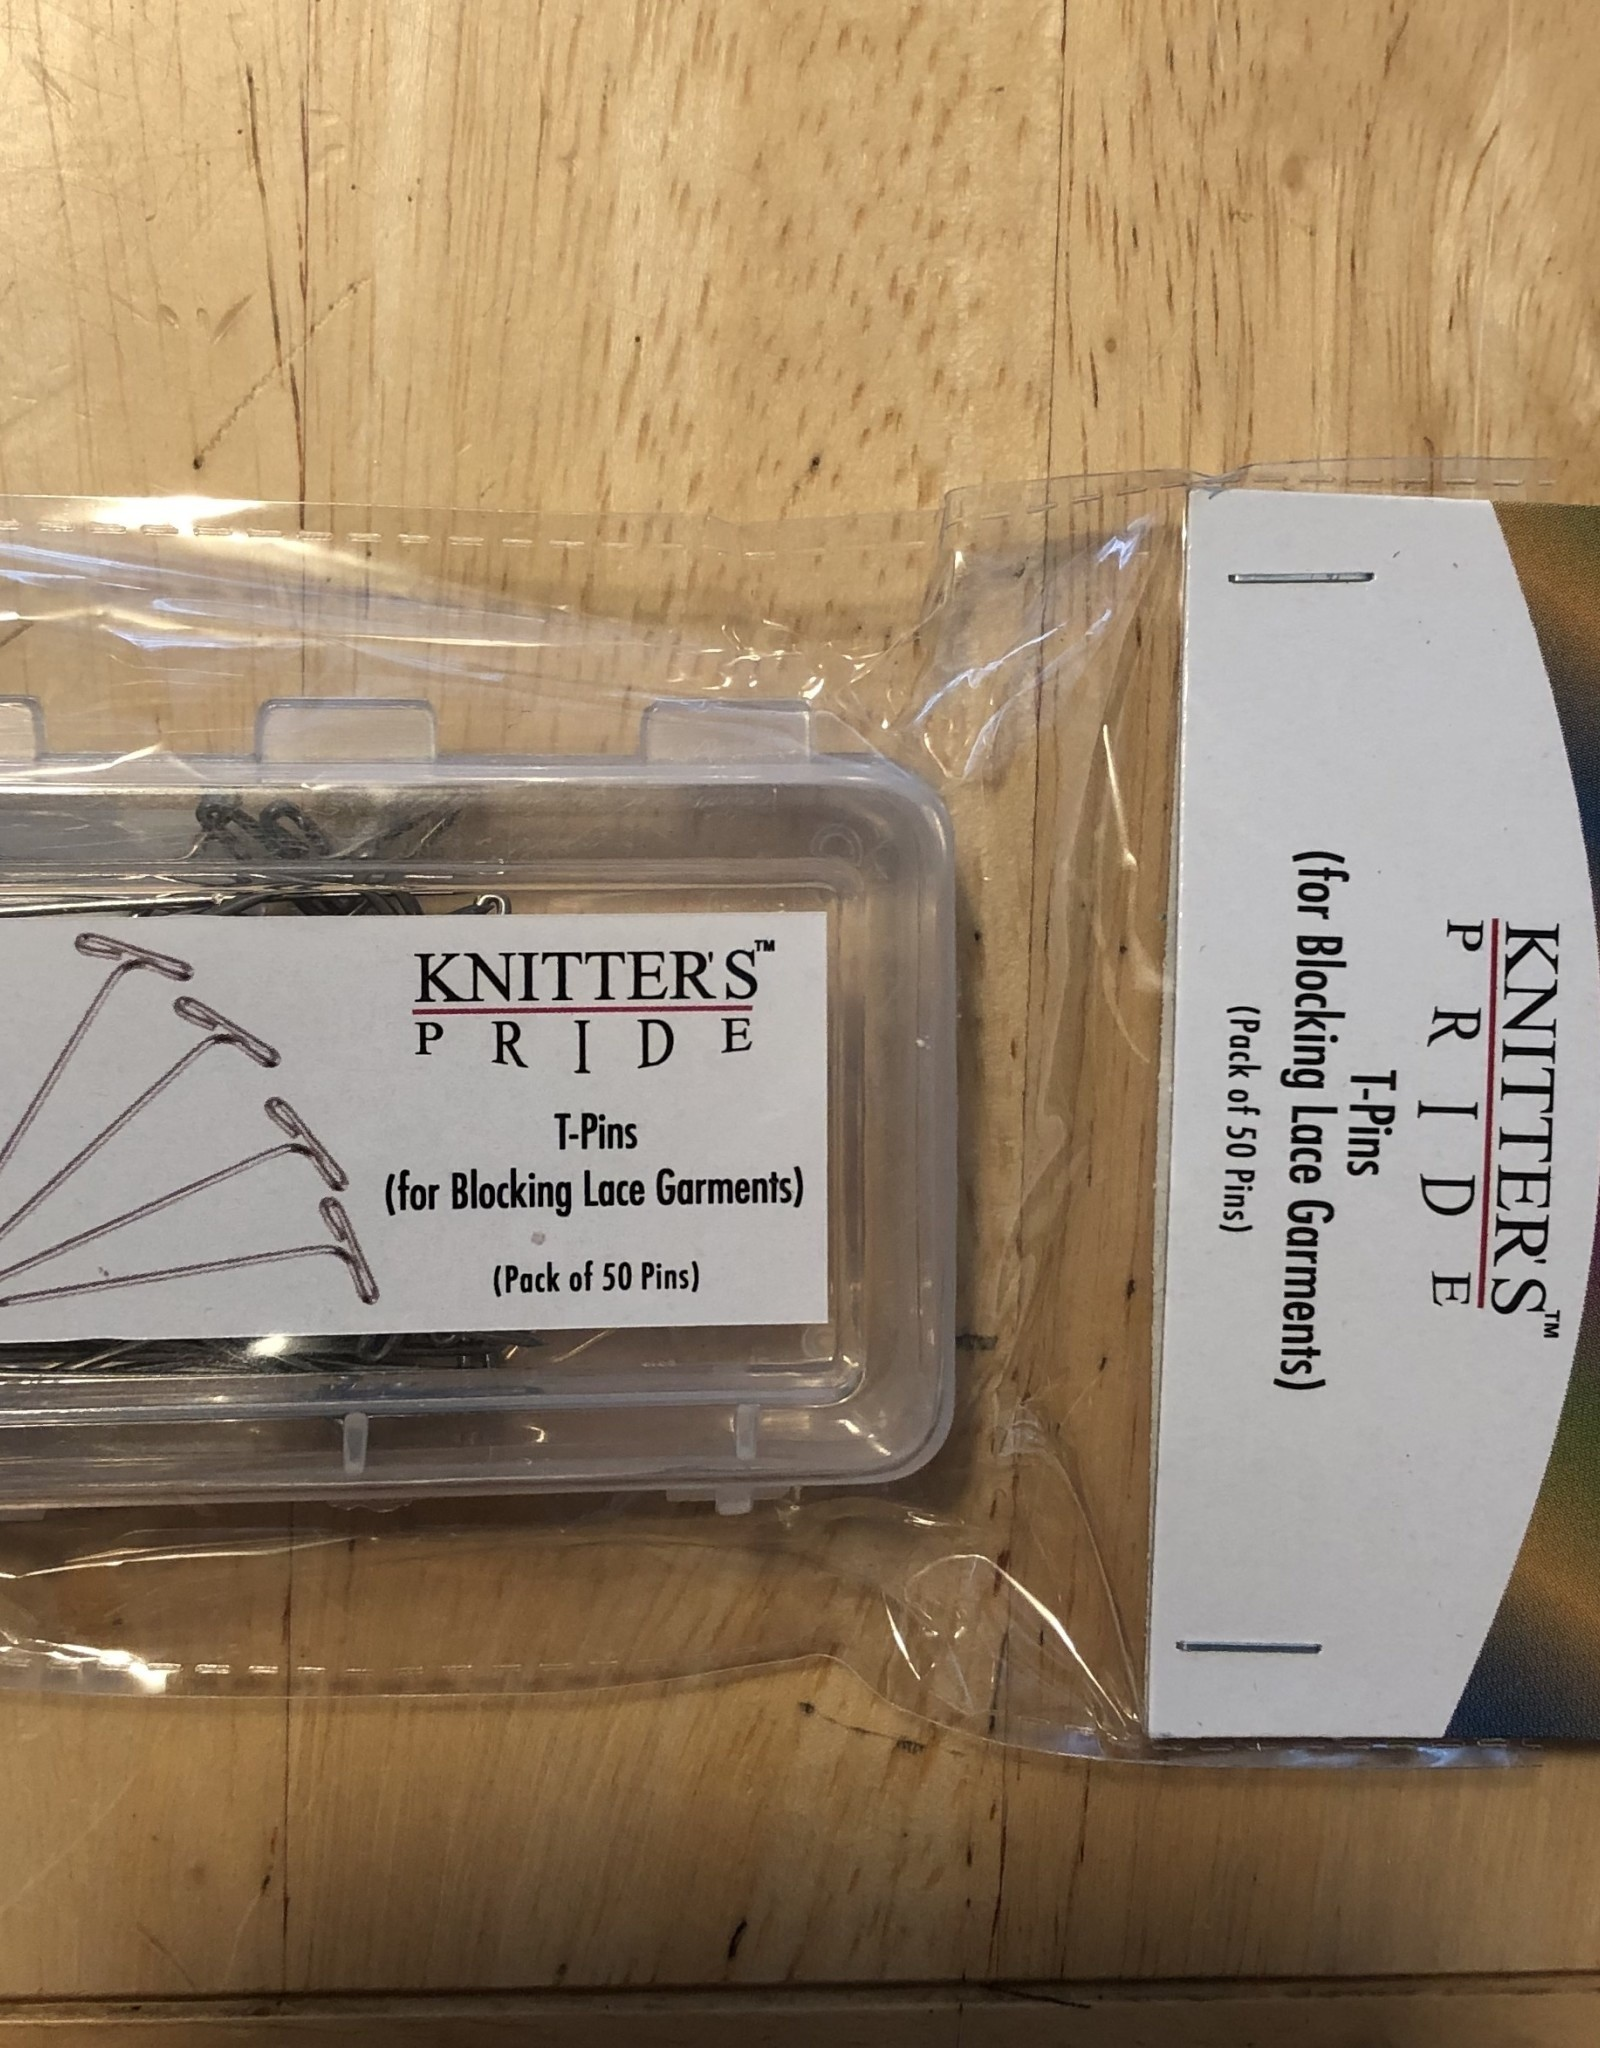 Knitters Pride T - Pins